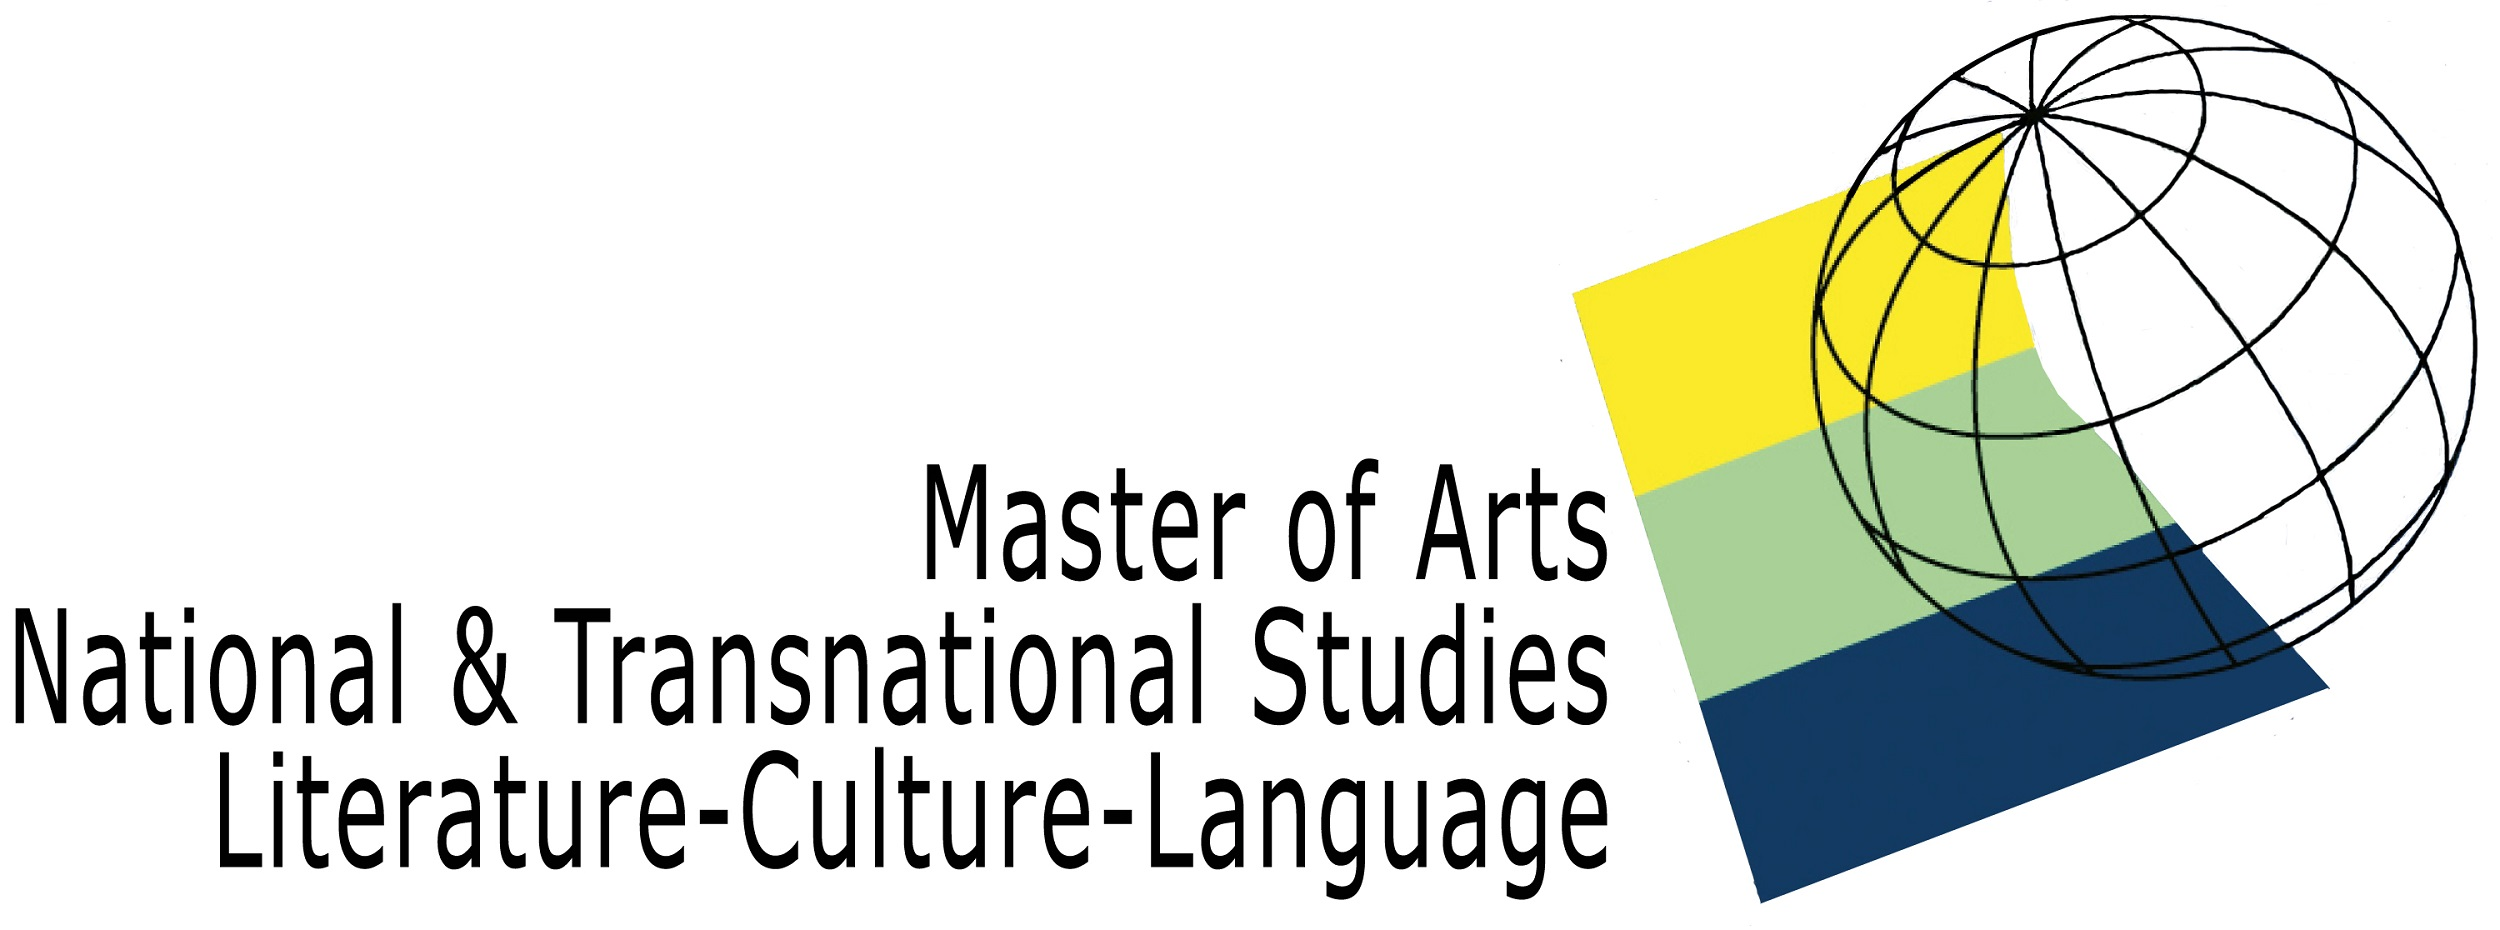 MA National & Transnational Studies - Frequently Asked Questions